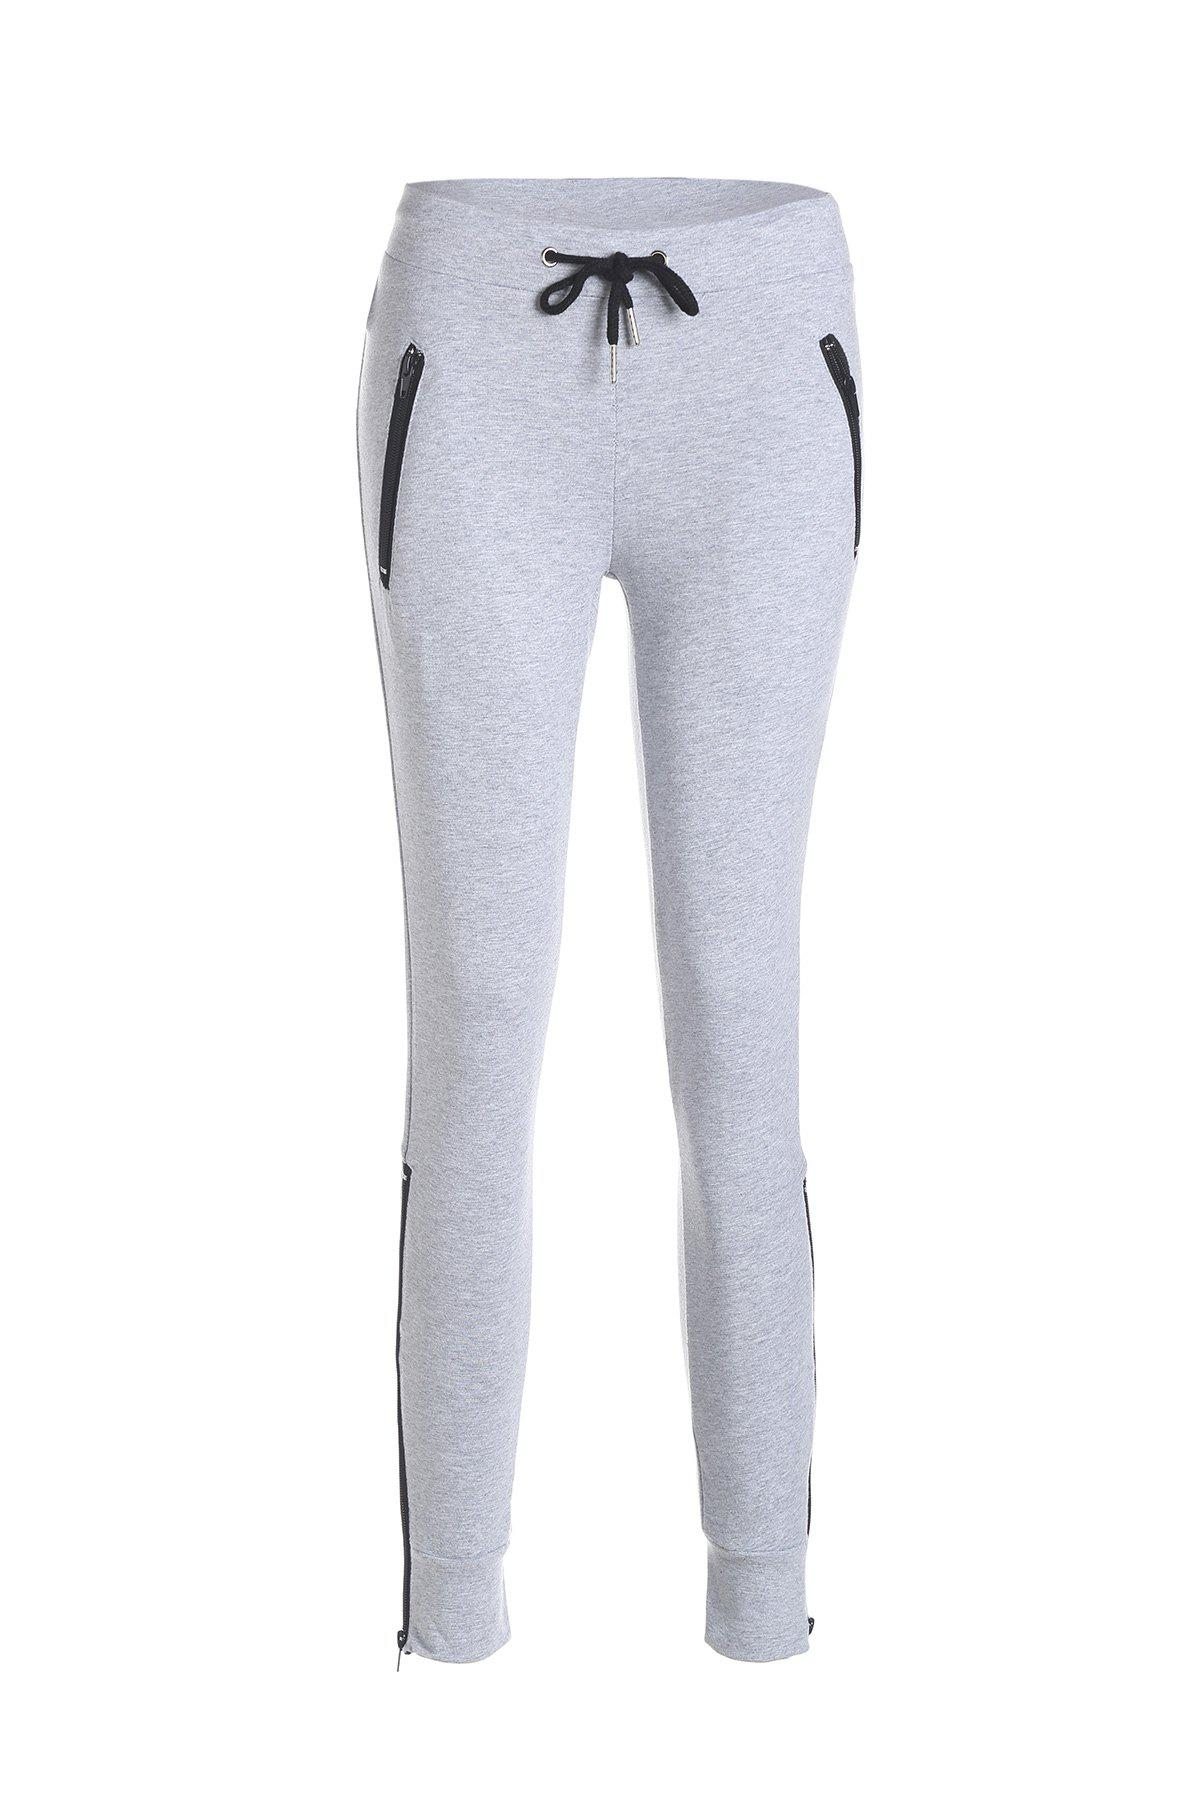 Active Women's Self-Tie Grey Pants - GRAY M